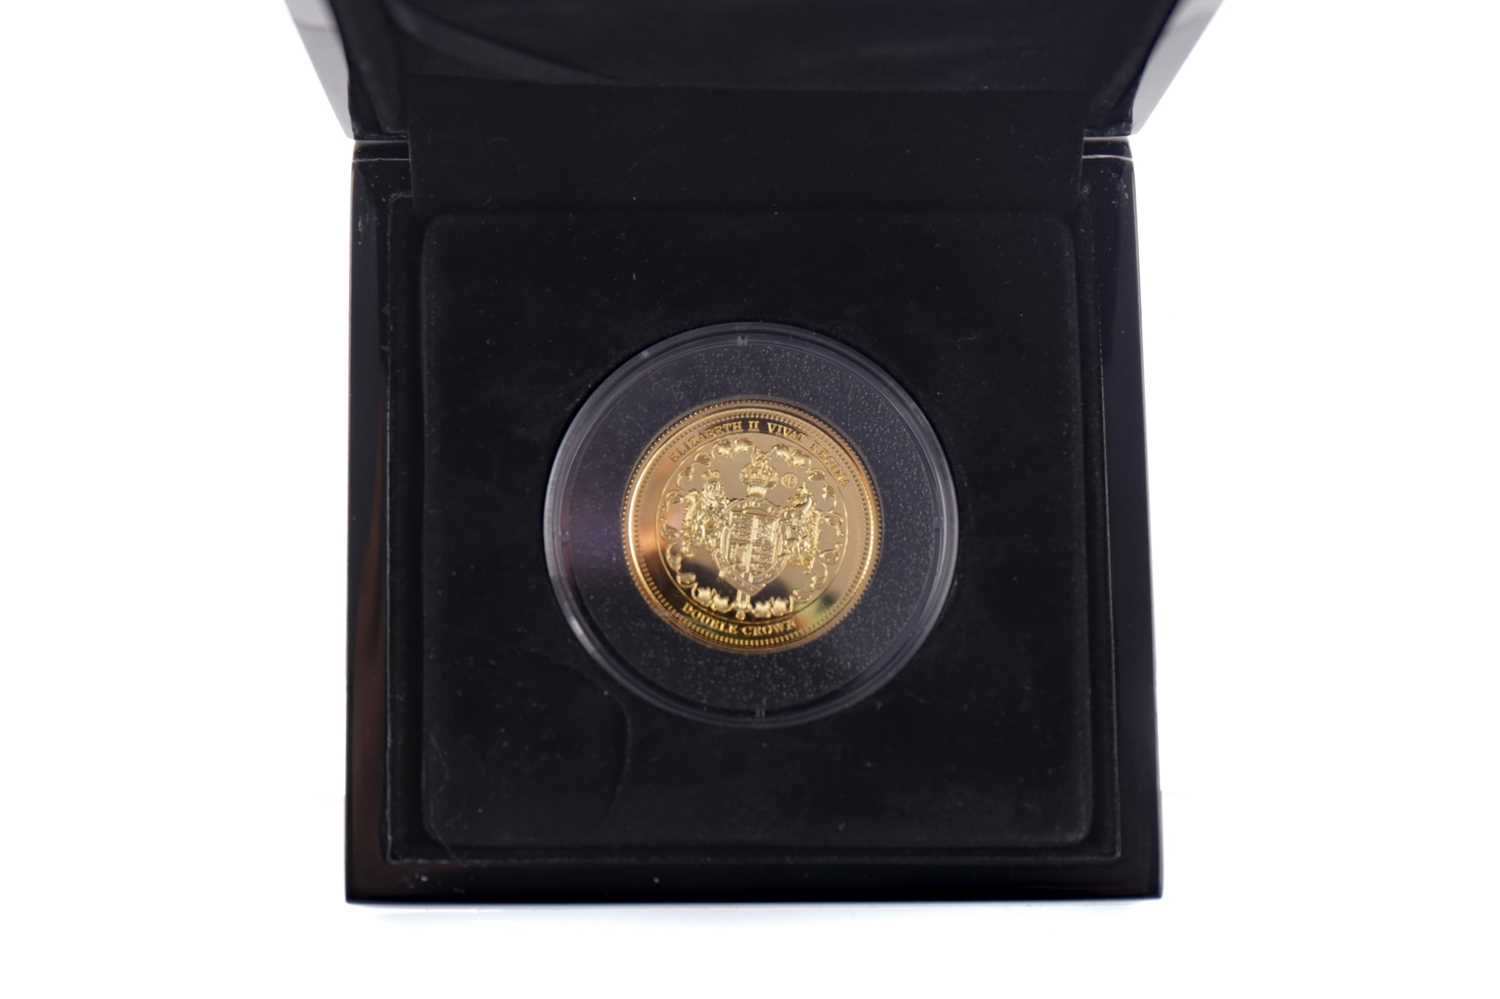 Lot 53 - A NINE CARAT GOLD DOUBLE CROWN DATED 2017